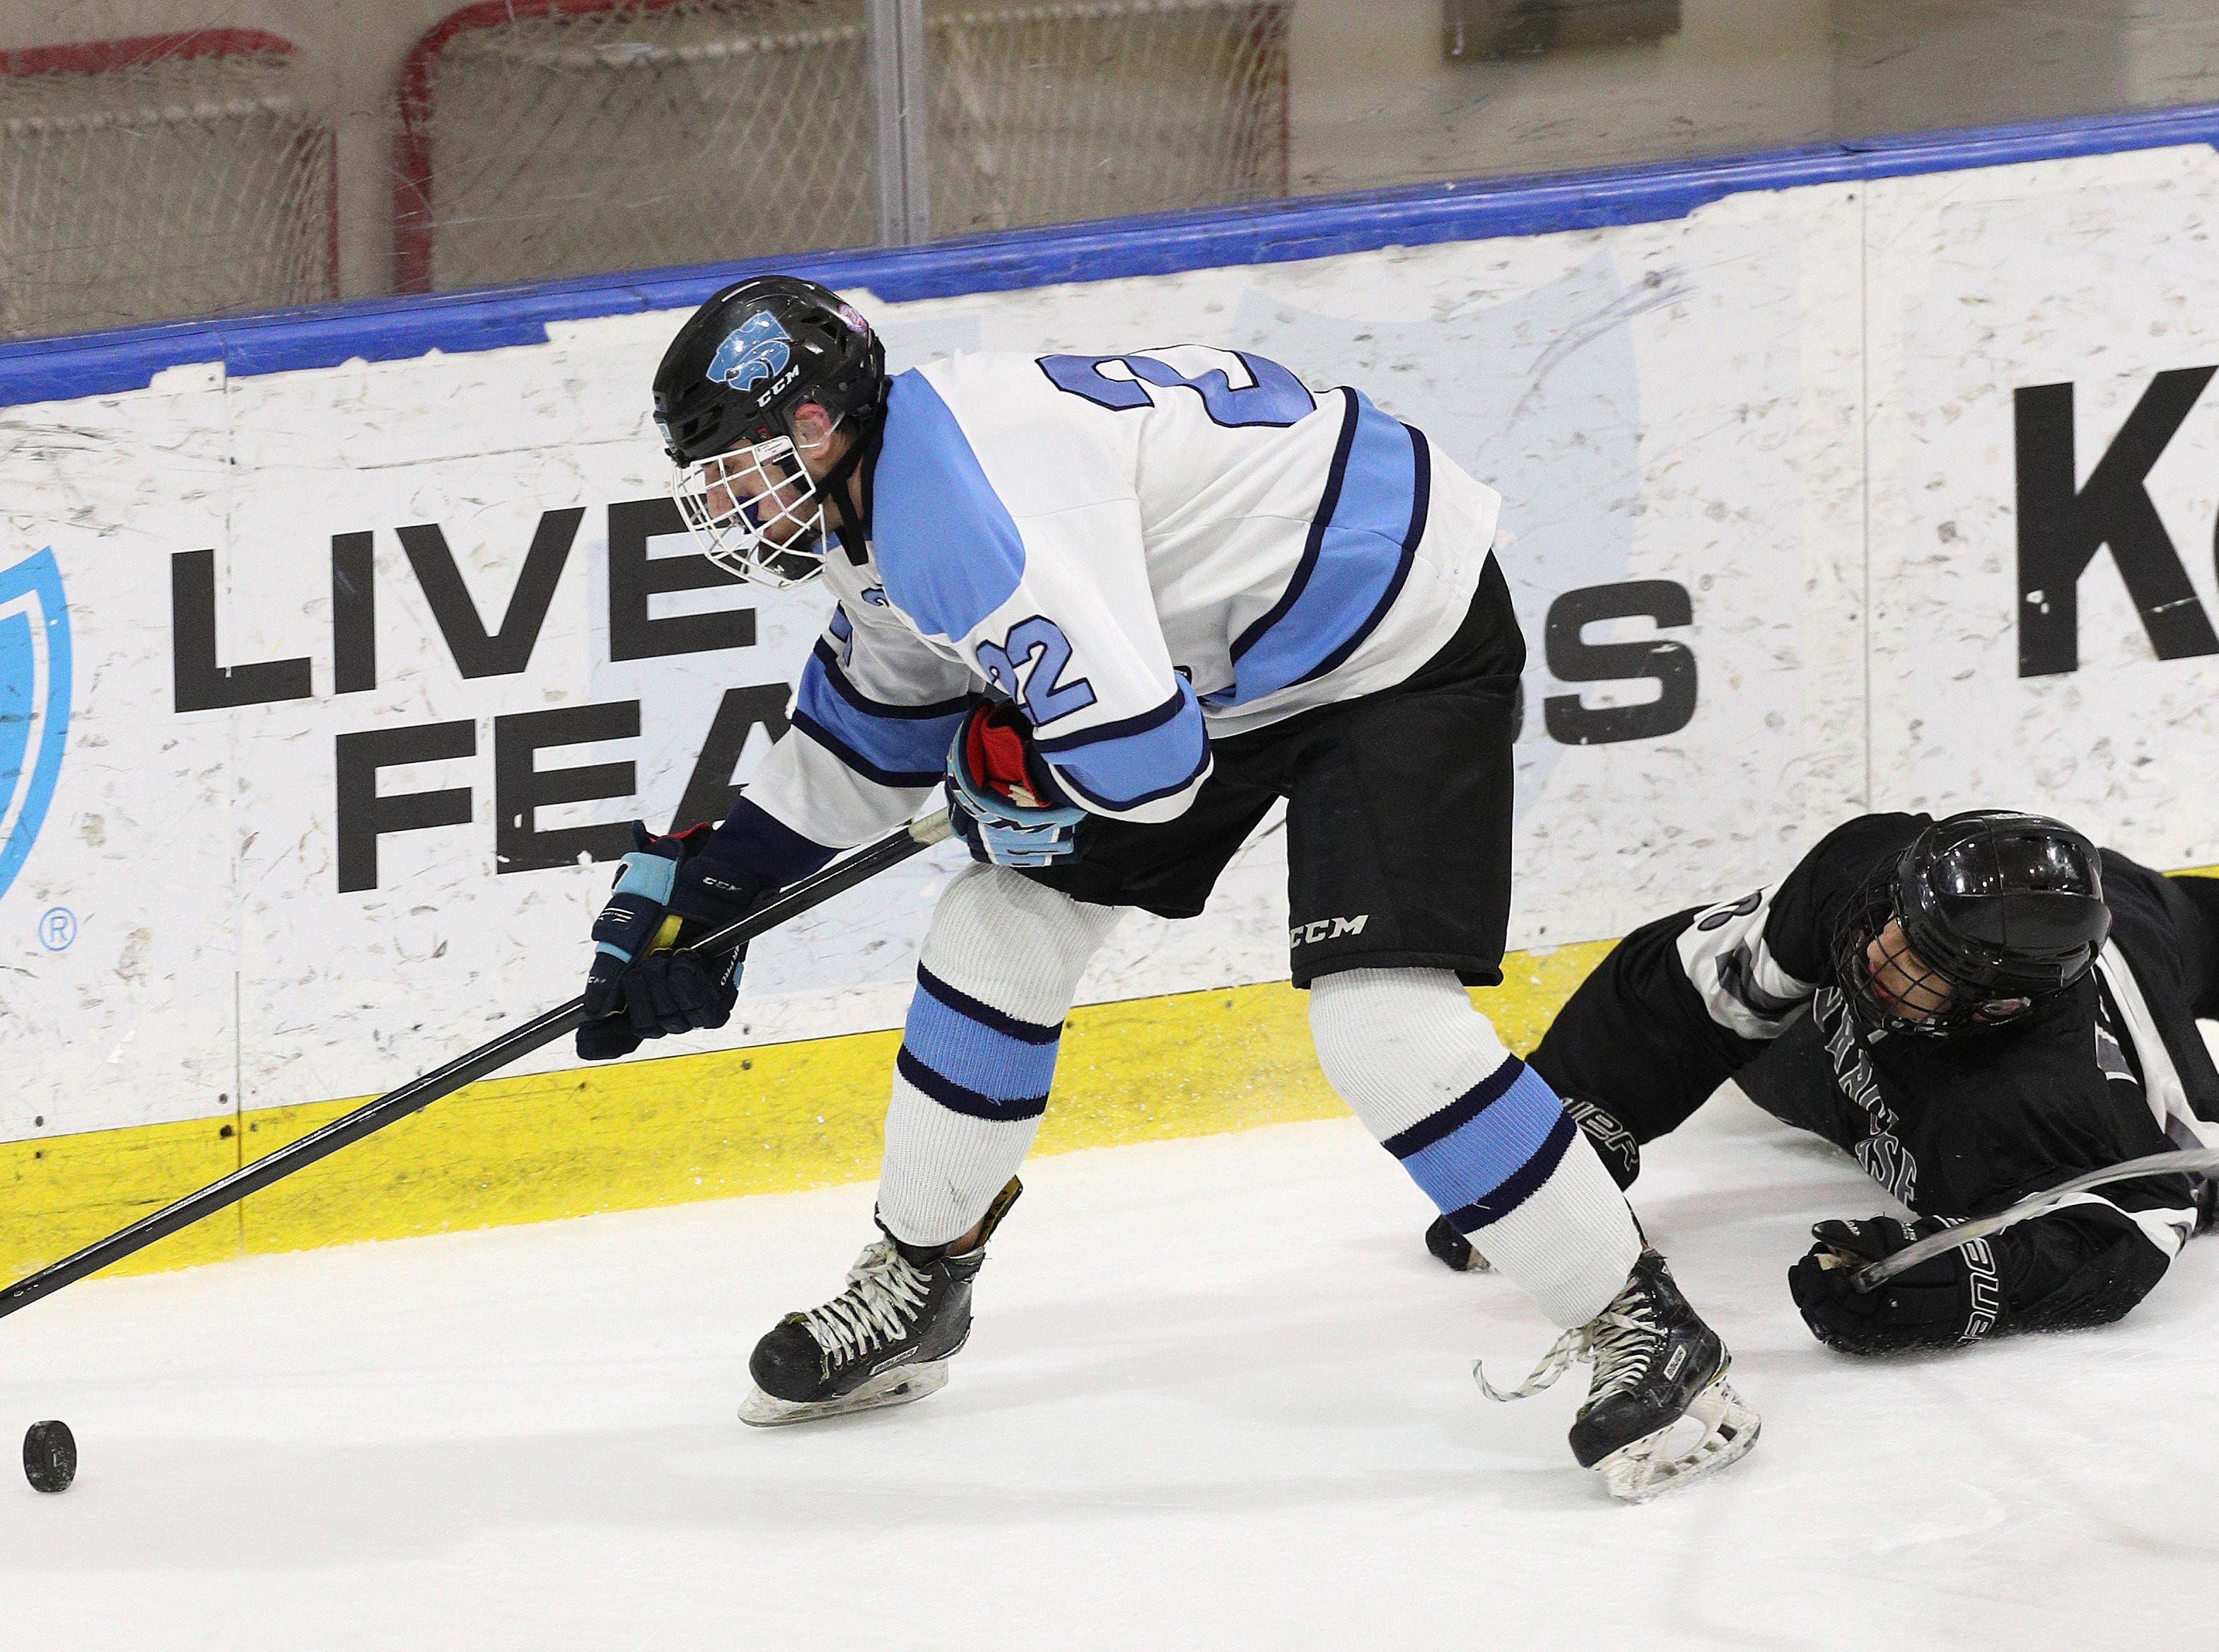 Suffern's Josh Abbott controls the puck behind the net in front of Syracuse's Skariwate Papineau.